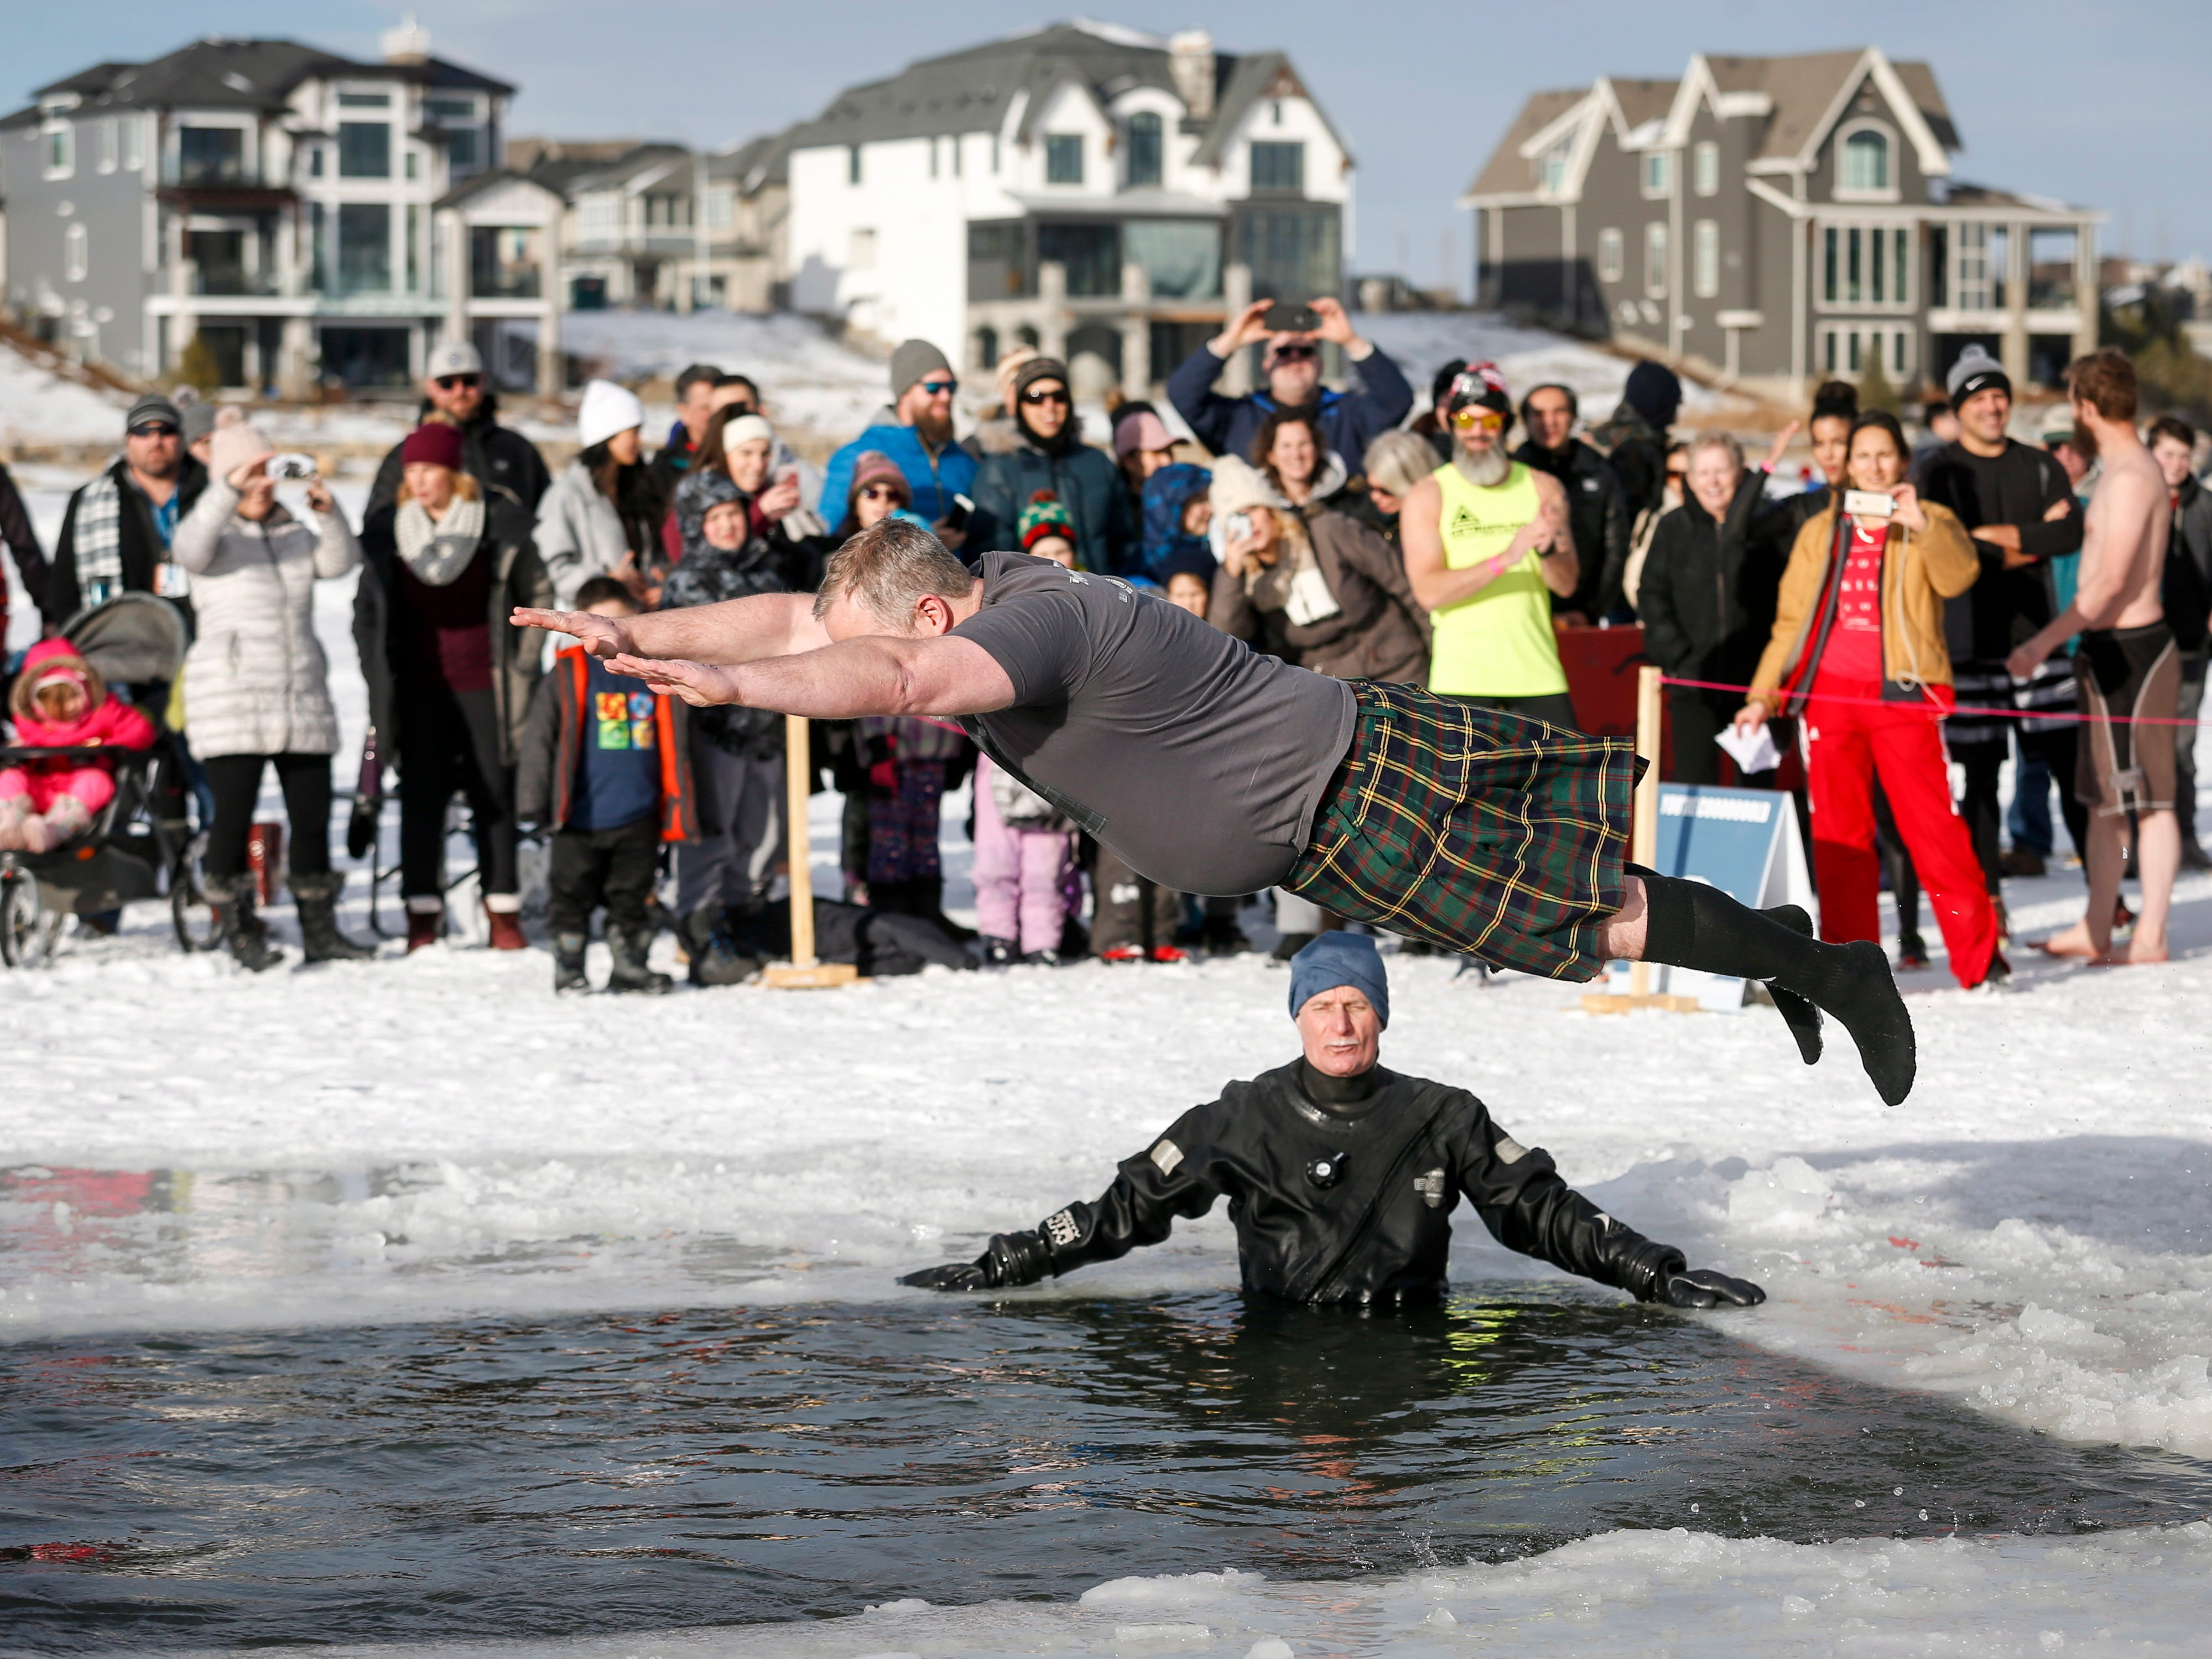 A participant leaps into the water in the 10th annual Polar Plunge in Calgary, Canada.